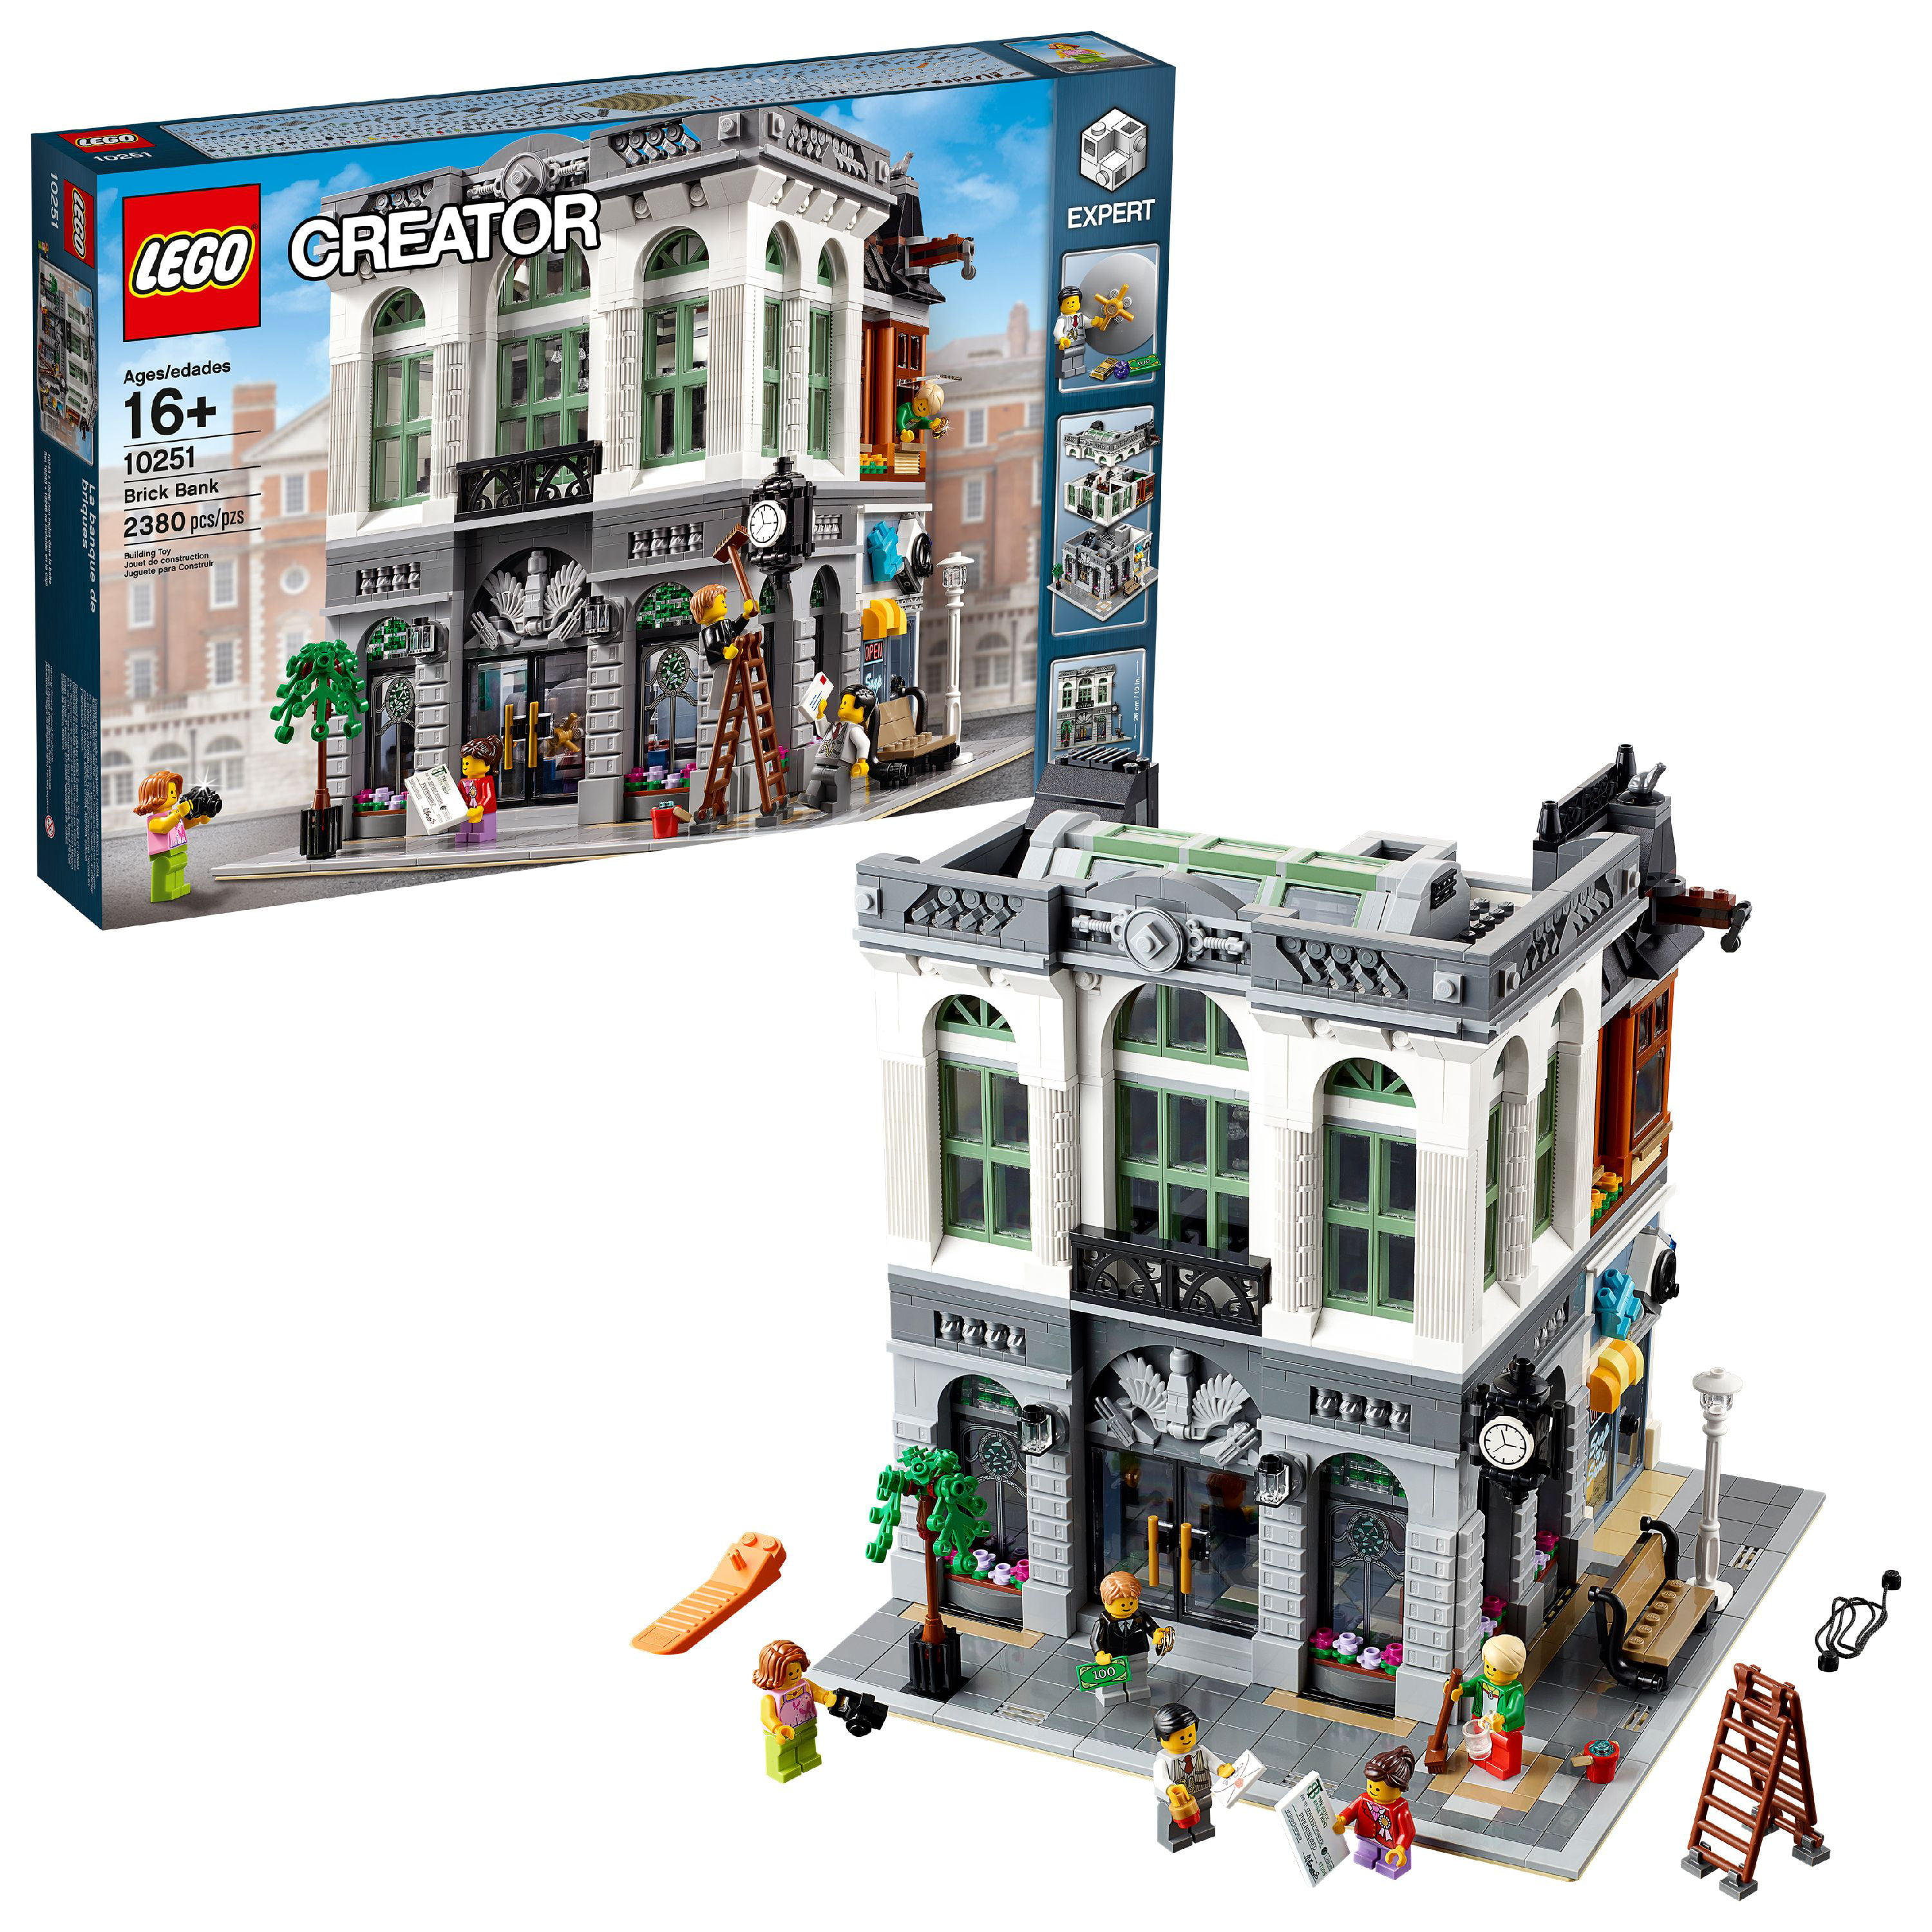 Lego Creator Expert Brick Bank 10251 (2,380 Pieces) by LEGO System Inc